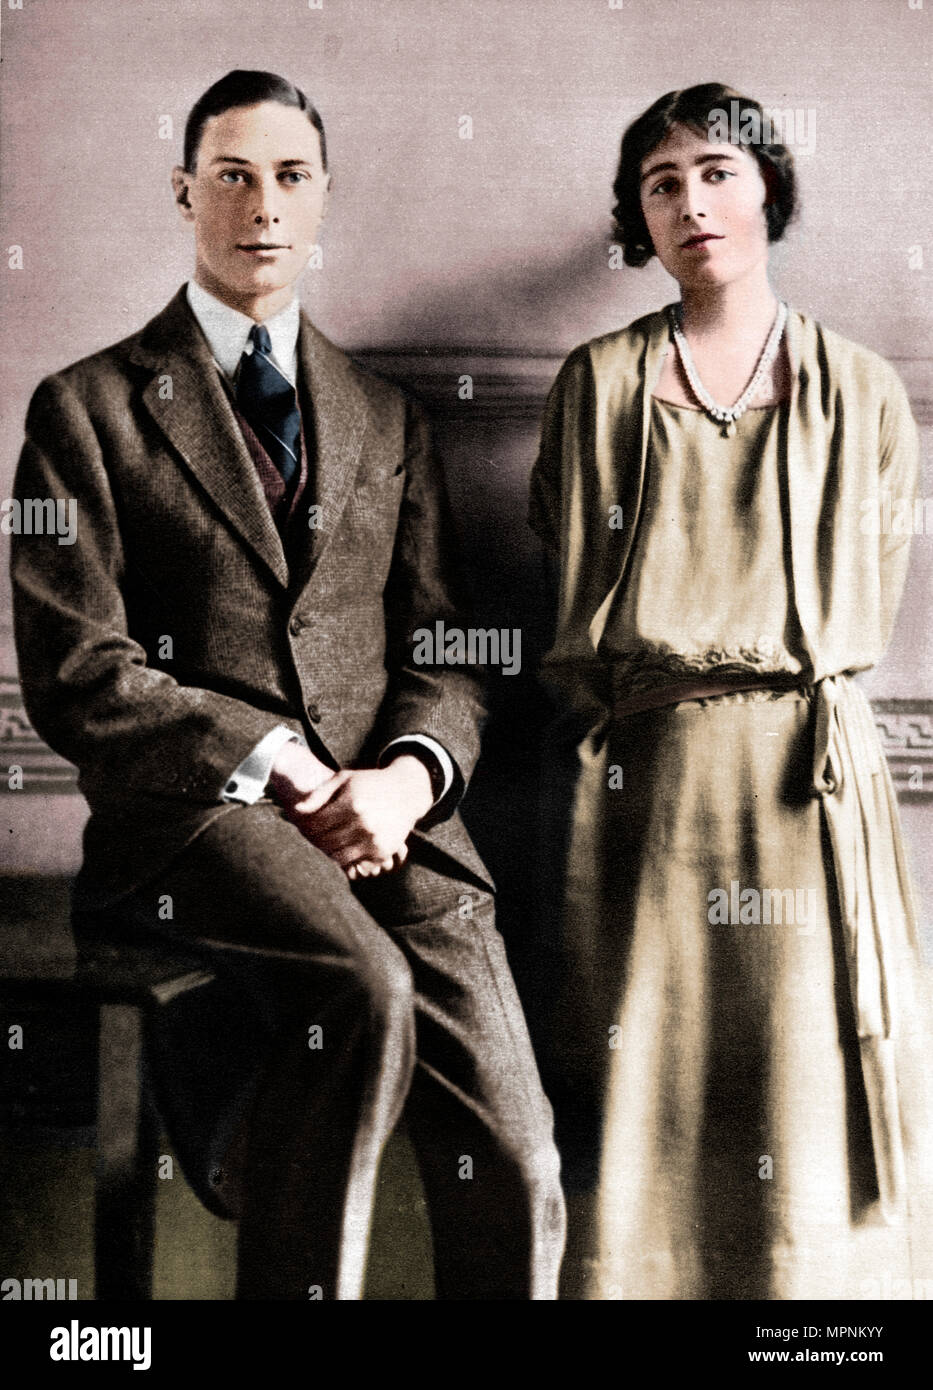 'Lady Elizabeth Bowes Lyon and the Duke of York upon the announcement of their engagement', 1923. Artist: Vandyk. - Stock Image